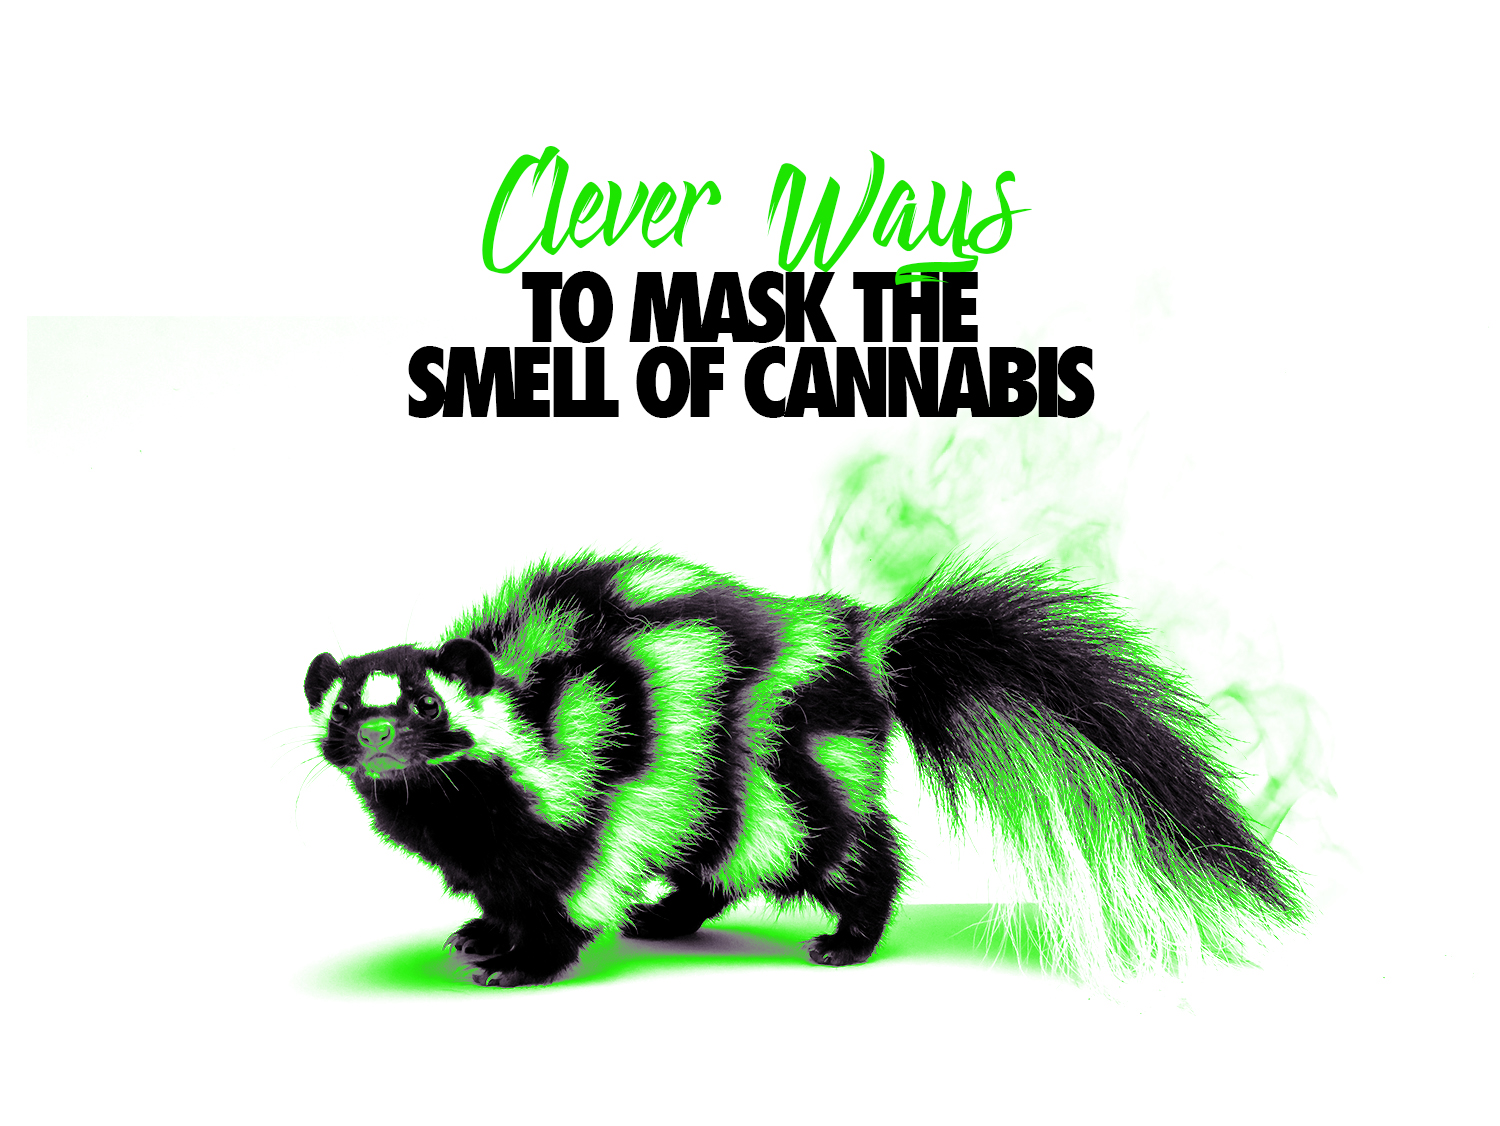 Clever Ways to Mask the Smell of Cannabis